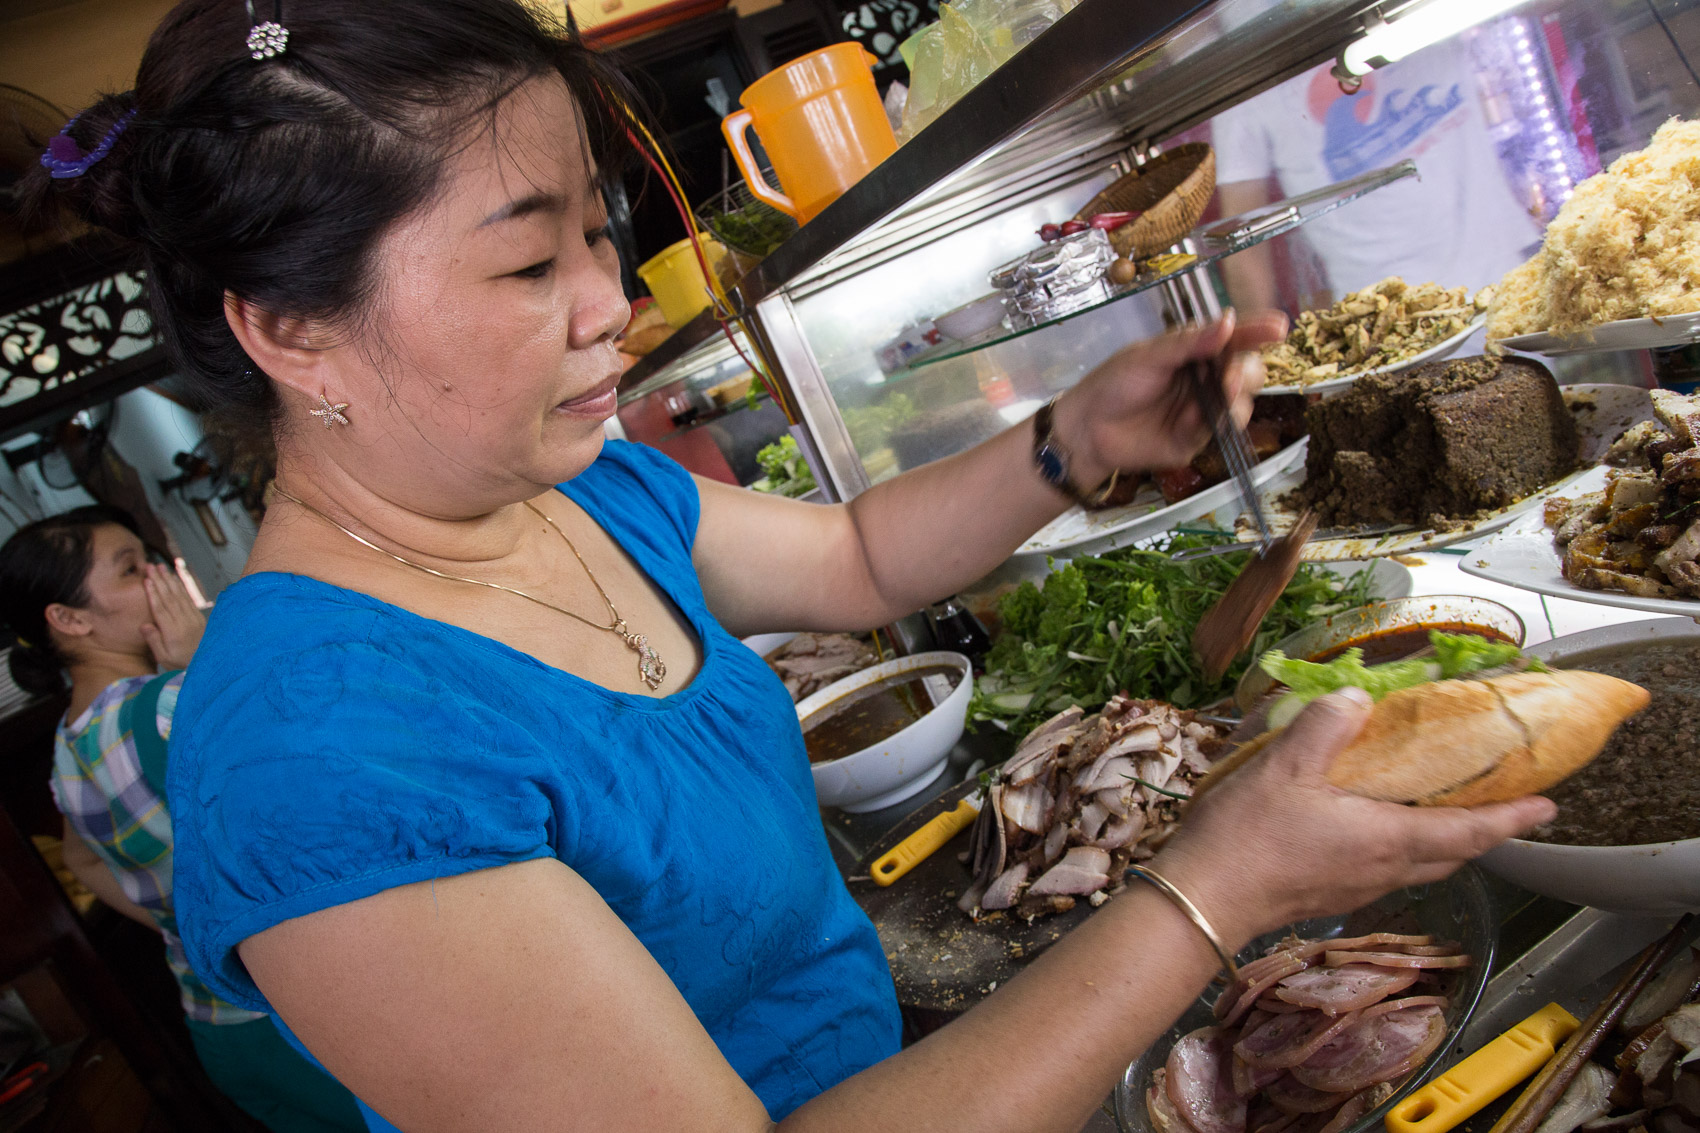 Madam Phuong pictured behind her counter.